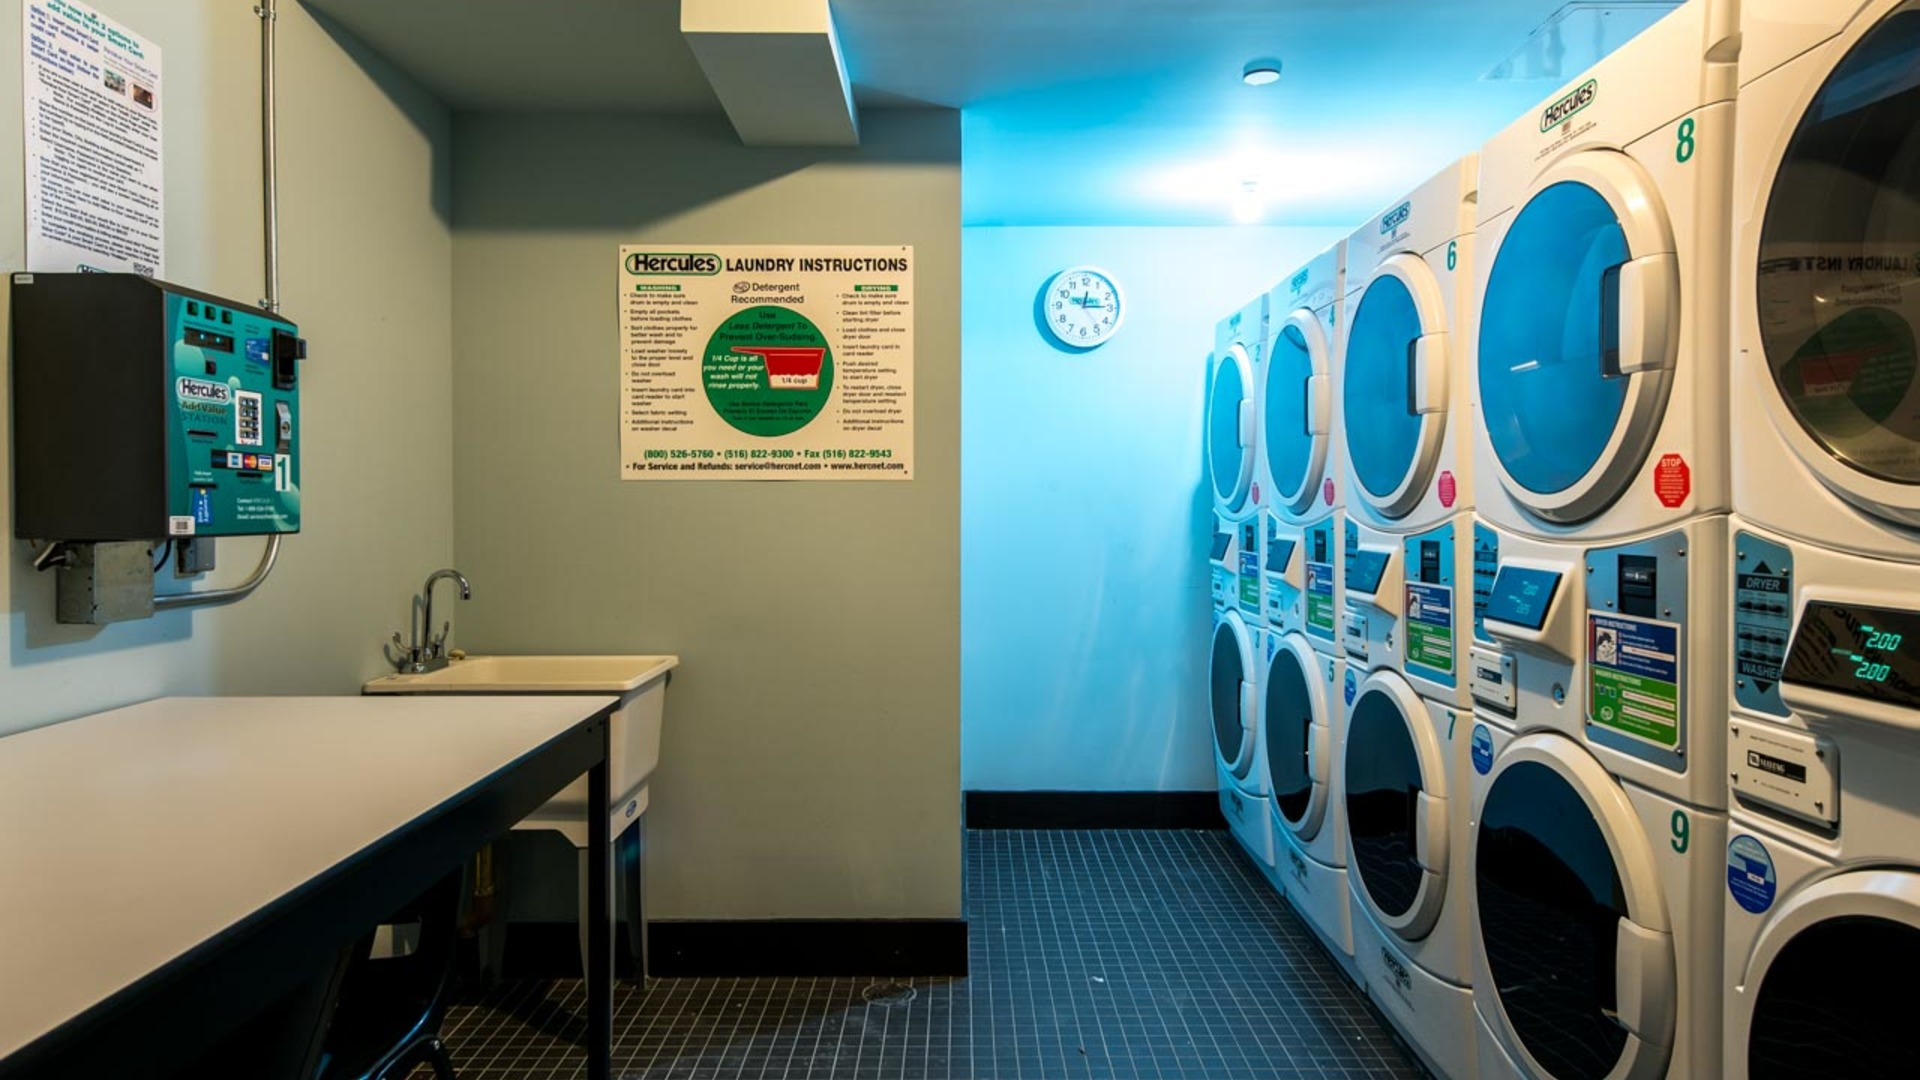 032 785 dekalb avenue laundry 1